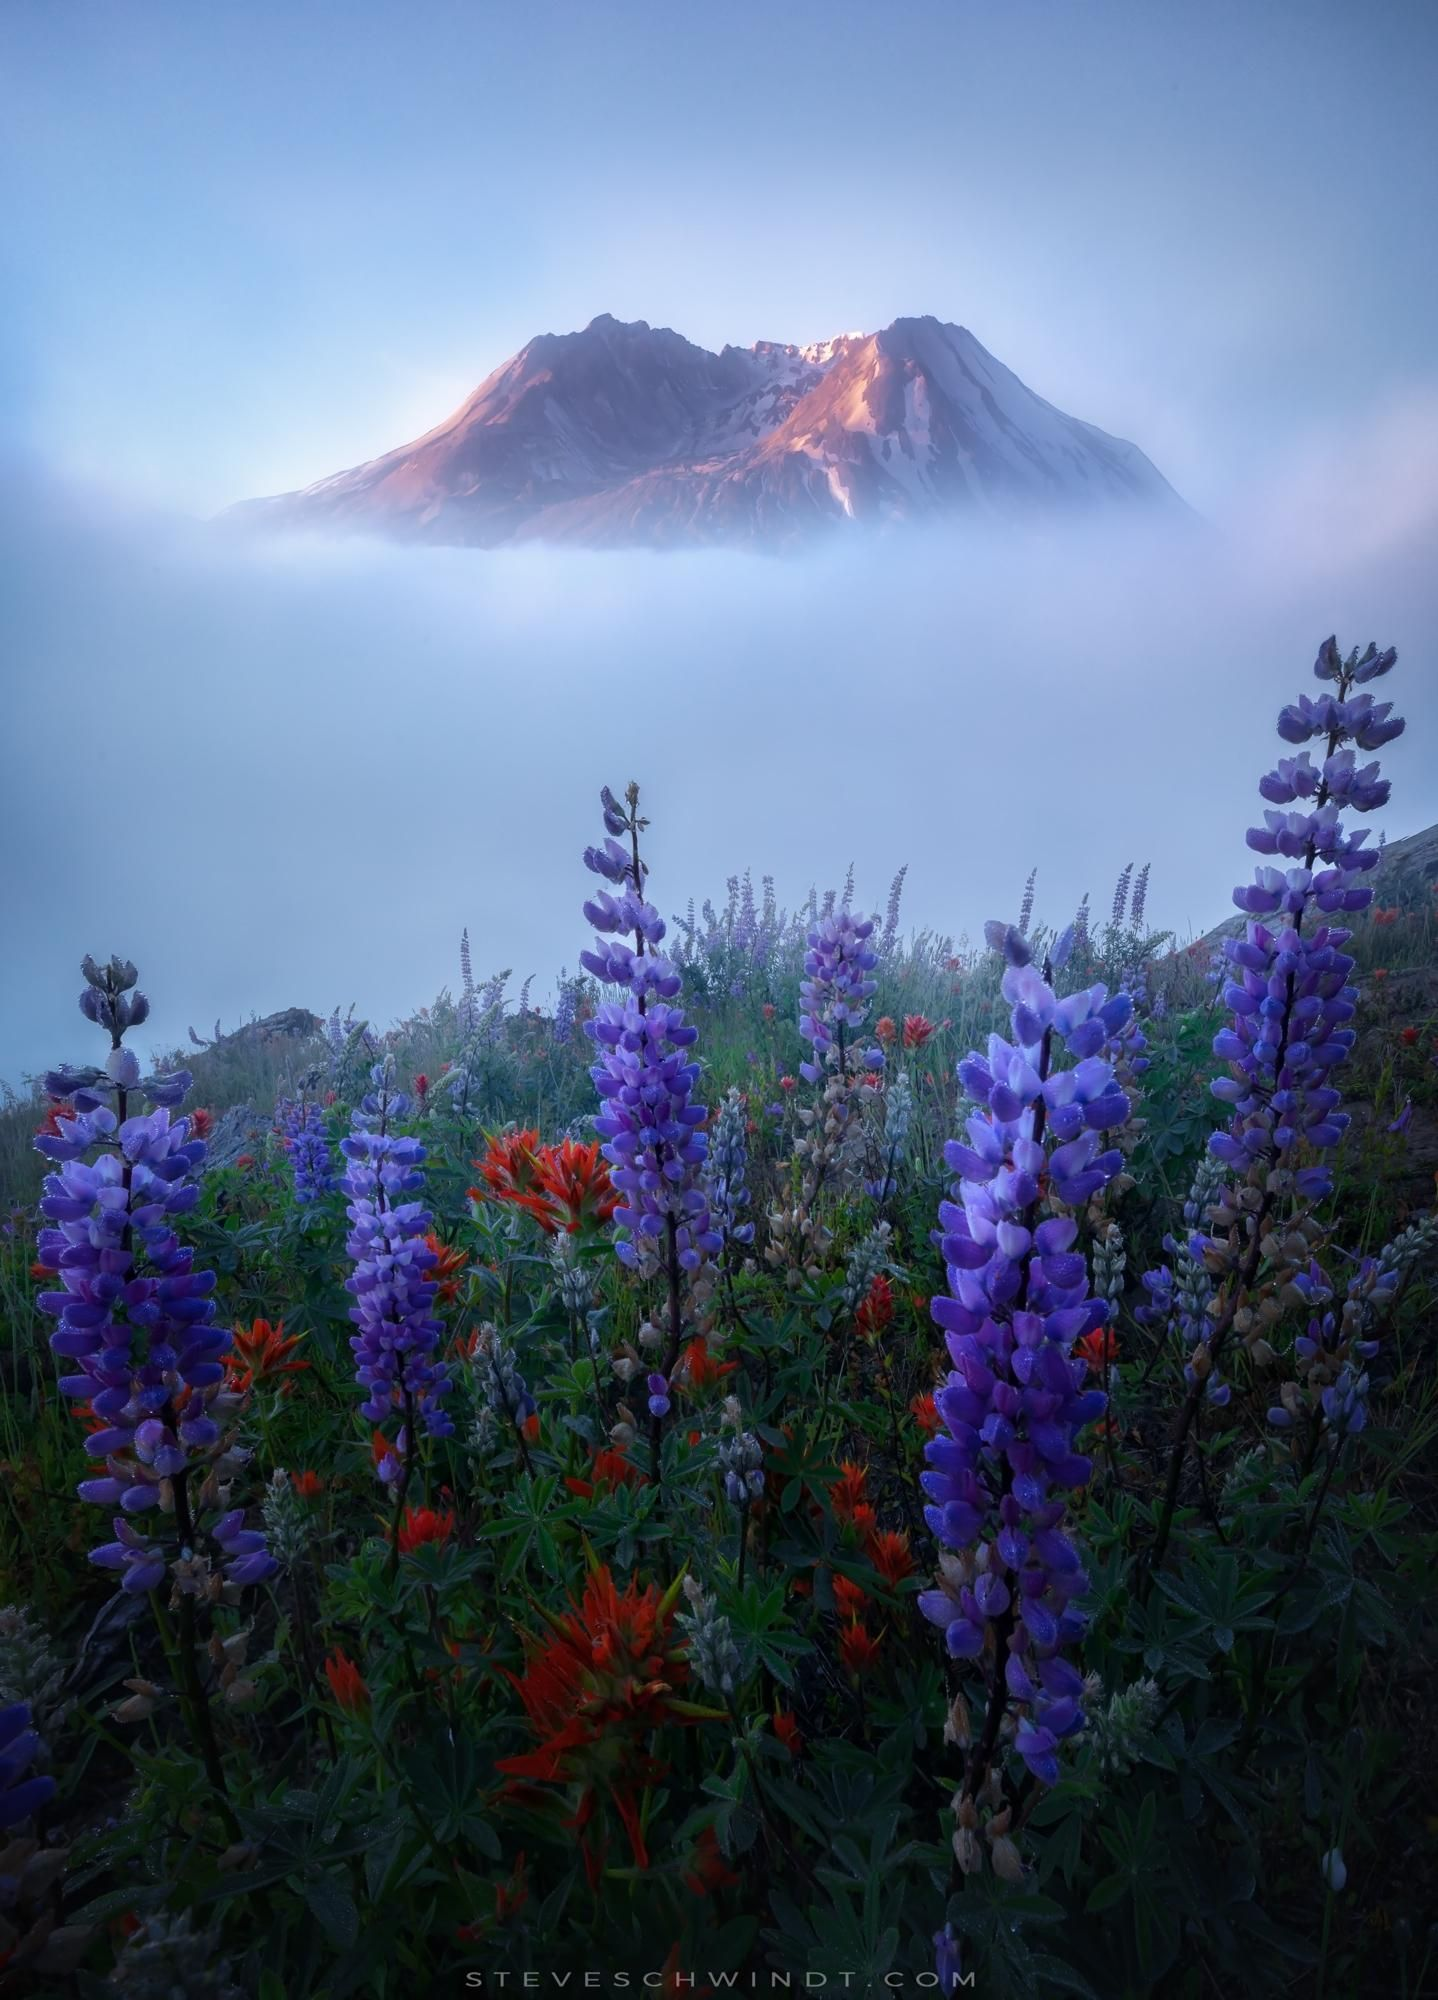 Mount st helens peaking above beautiful wildflowers and thick fog mount st helens peaking above beautiful wildflowers and thick fog oc 1438x200 izmirmasajfo